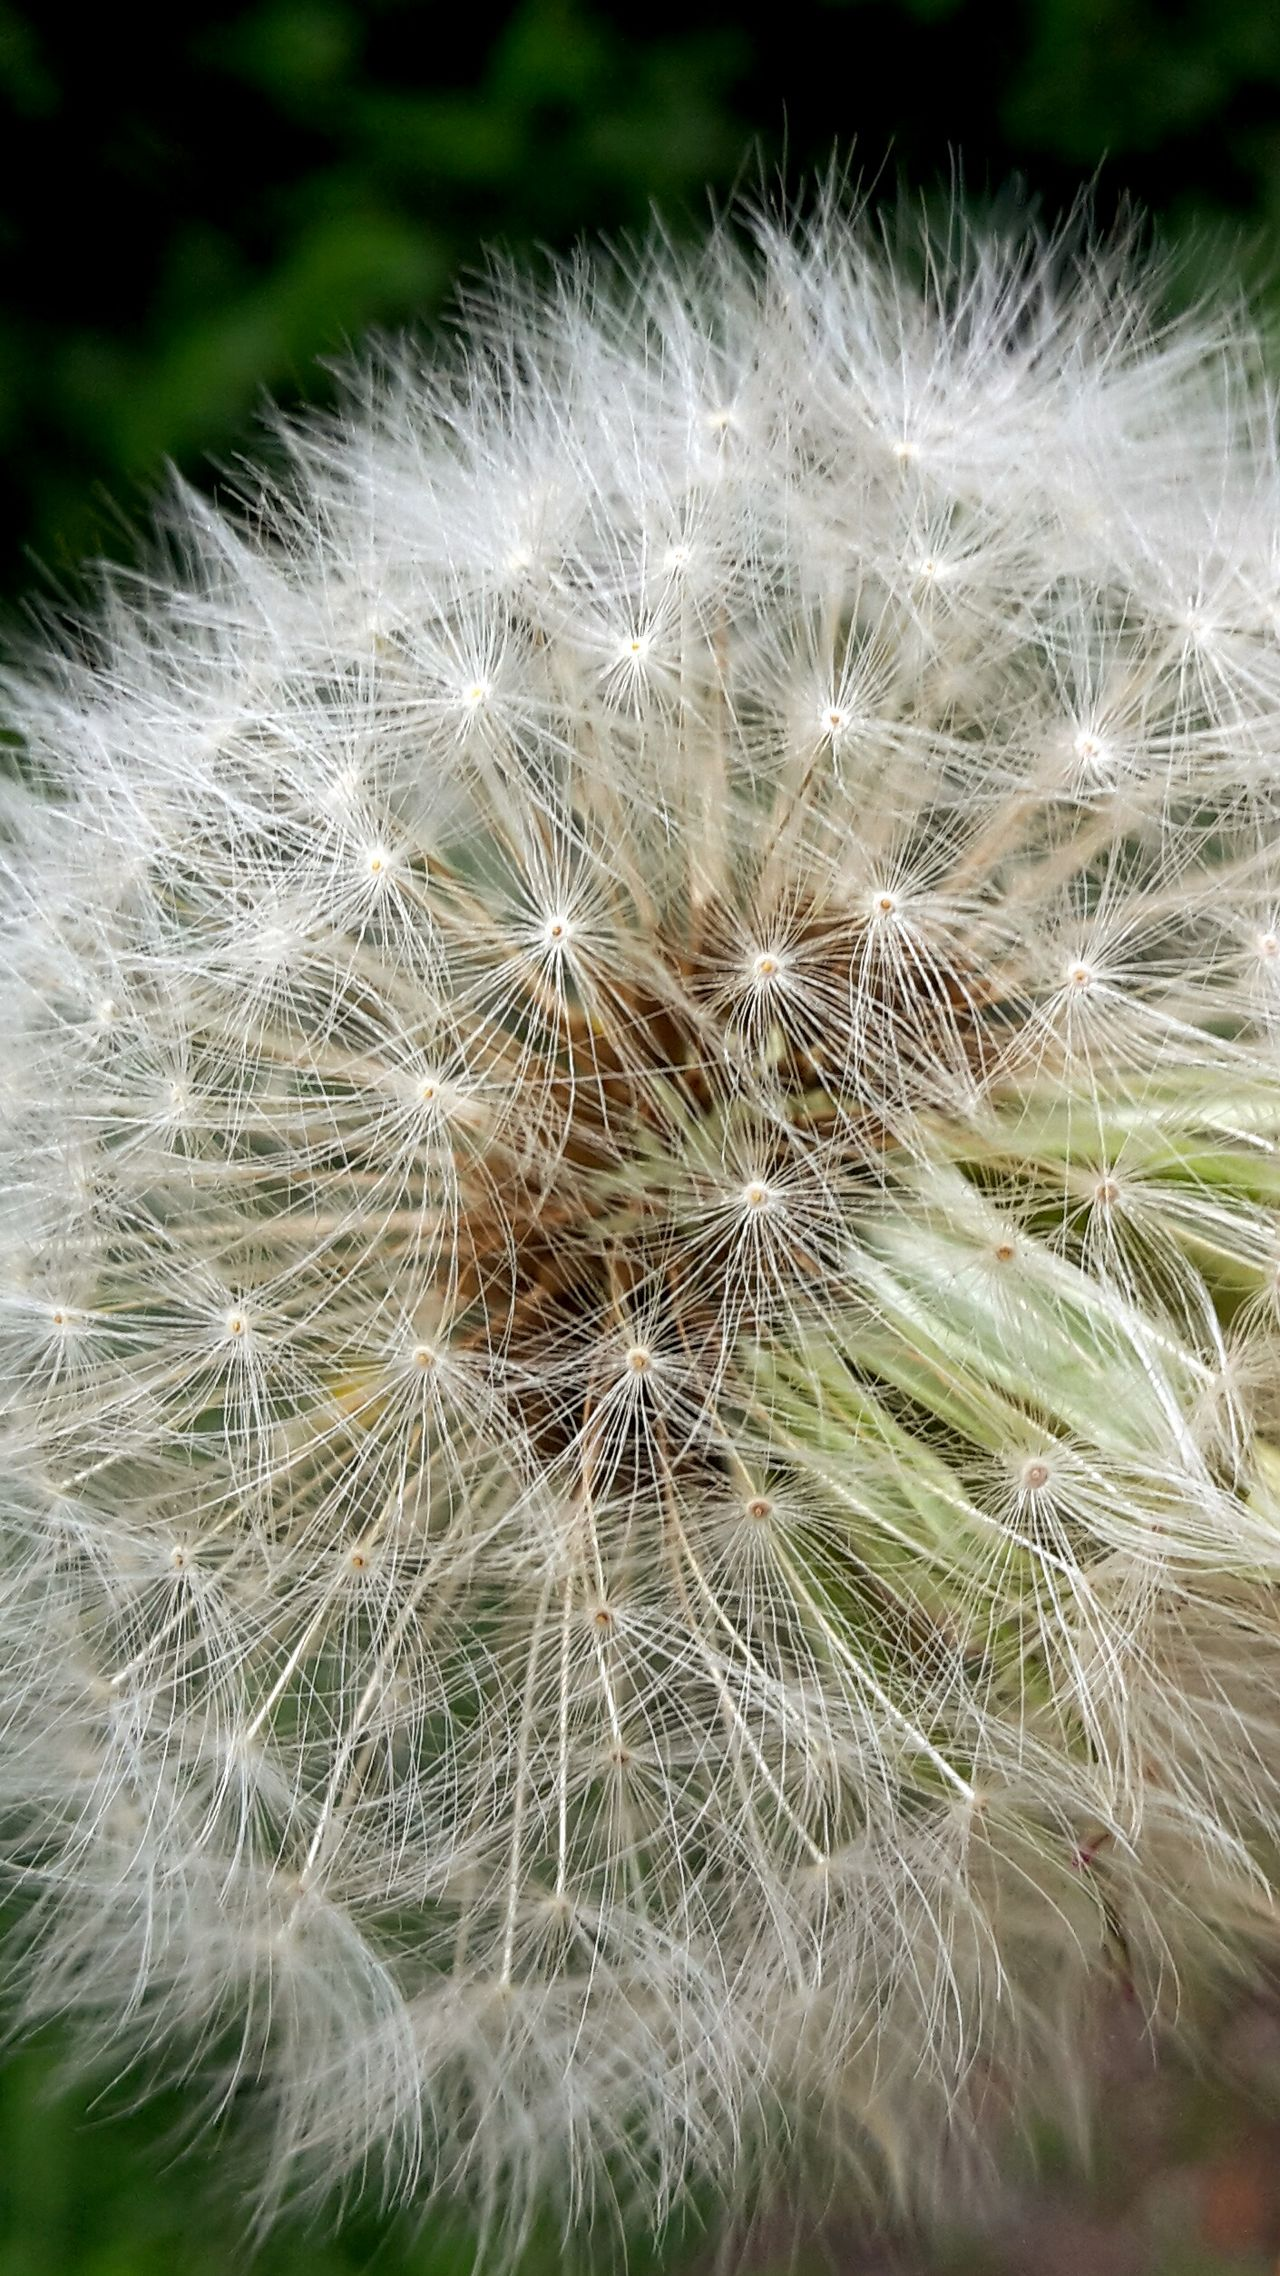 Flower Dandelion Fragility Softness Dandelion Seed Flower Head Nature Freshness Close-up Beauty In Nature Focus On Foreground Uncultivated Growth Seed Plant Springtime Outdoors Day Löwenzahn Pusteblume Frühling Endlich Frühling Zart